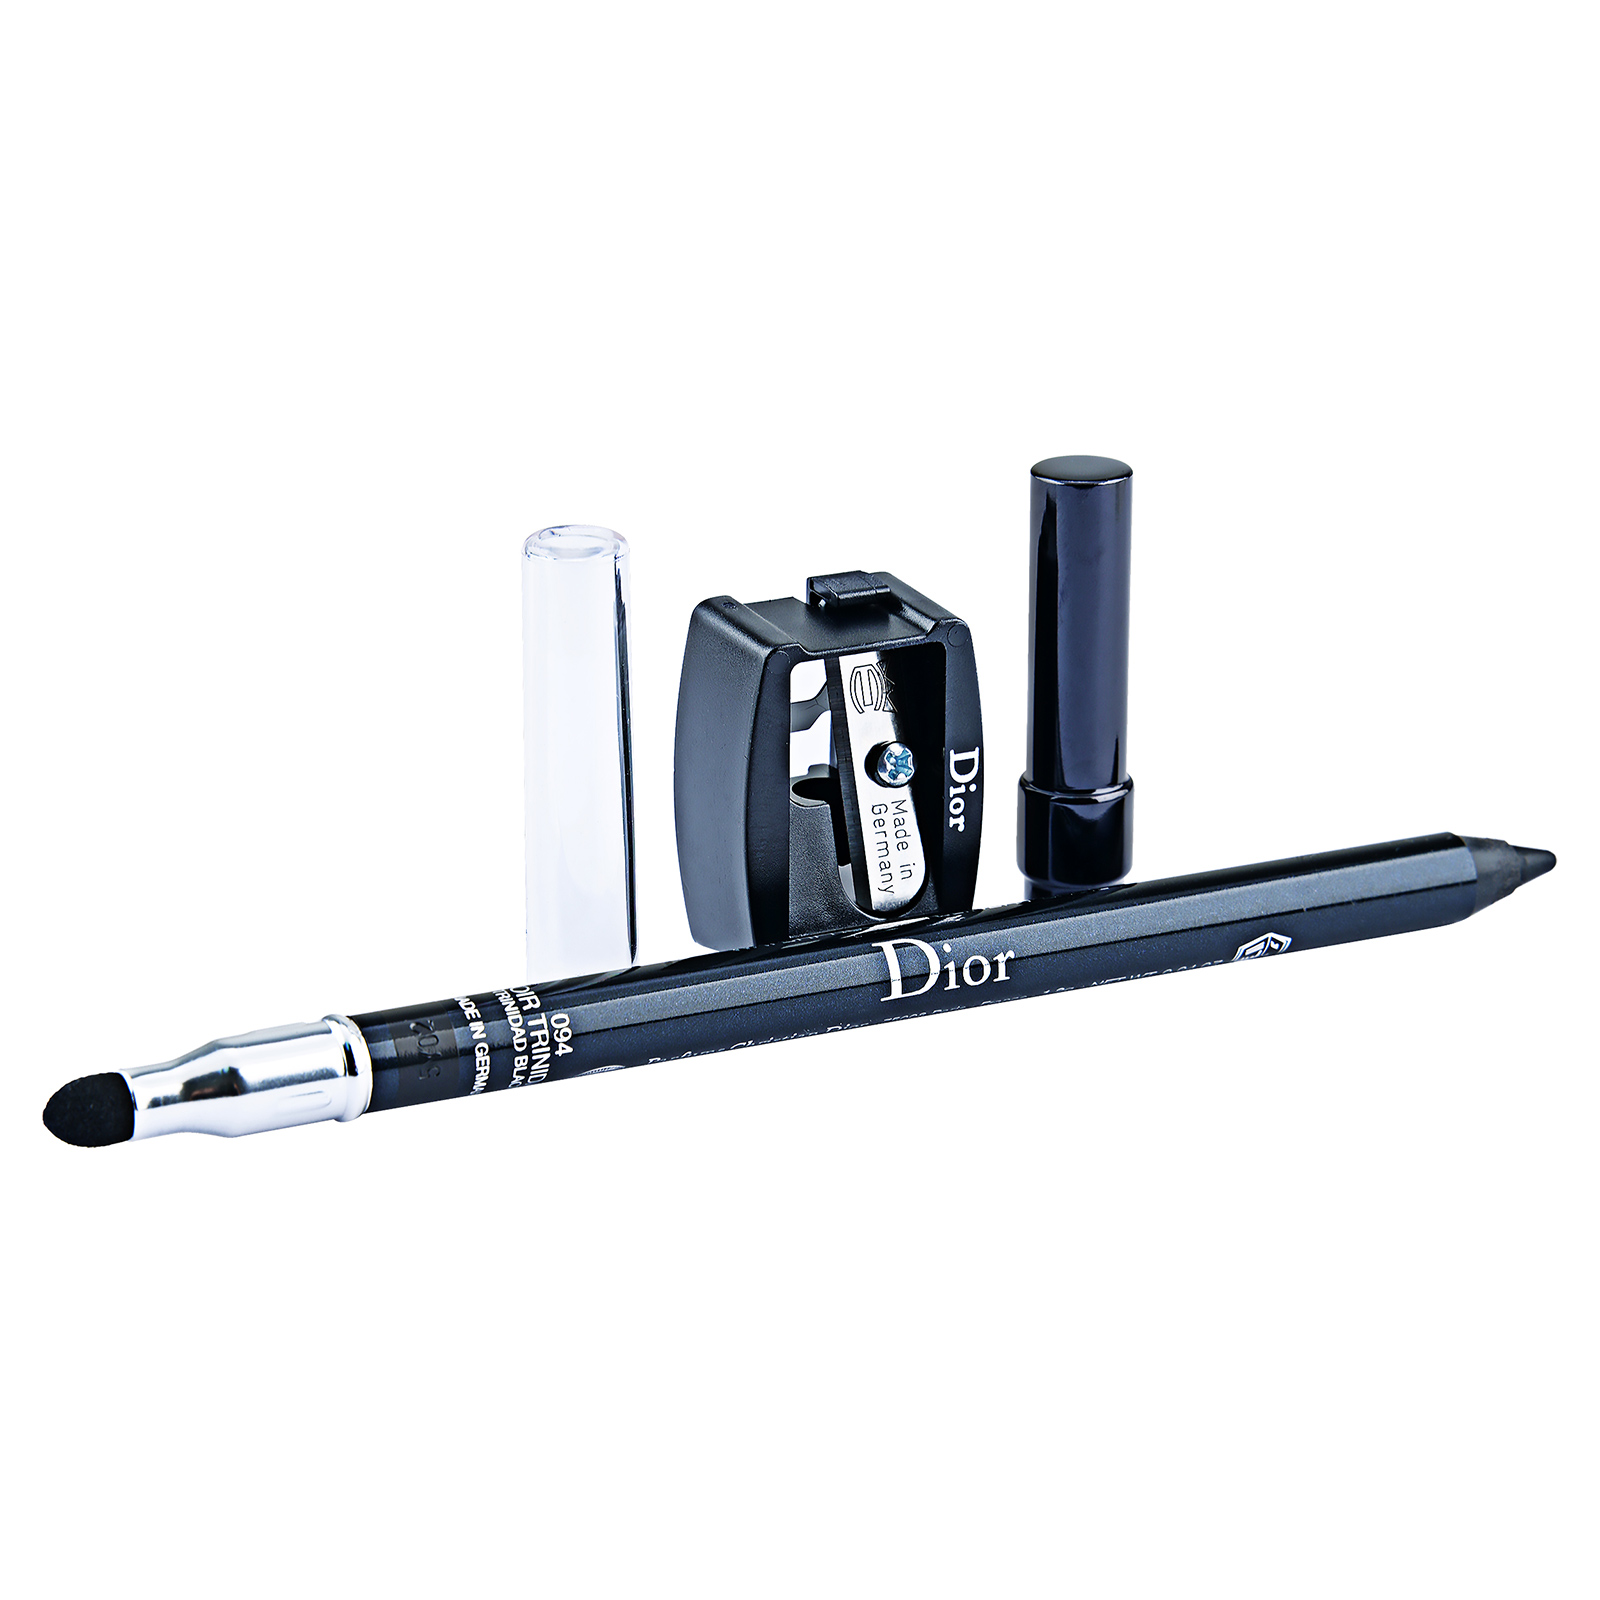 Christian Dior  Long-Wear Waterproof Eyeliner Pencil 094 Trinidad Black, 0.04oz, 1.2g